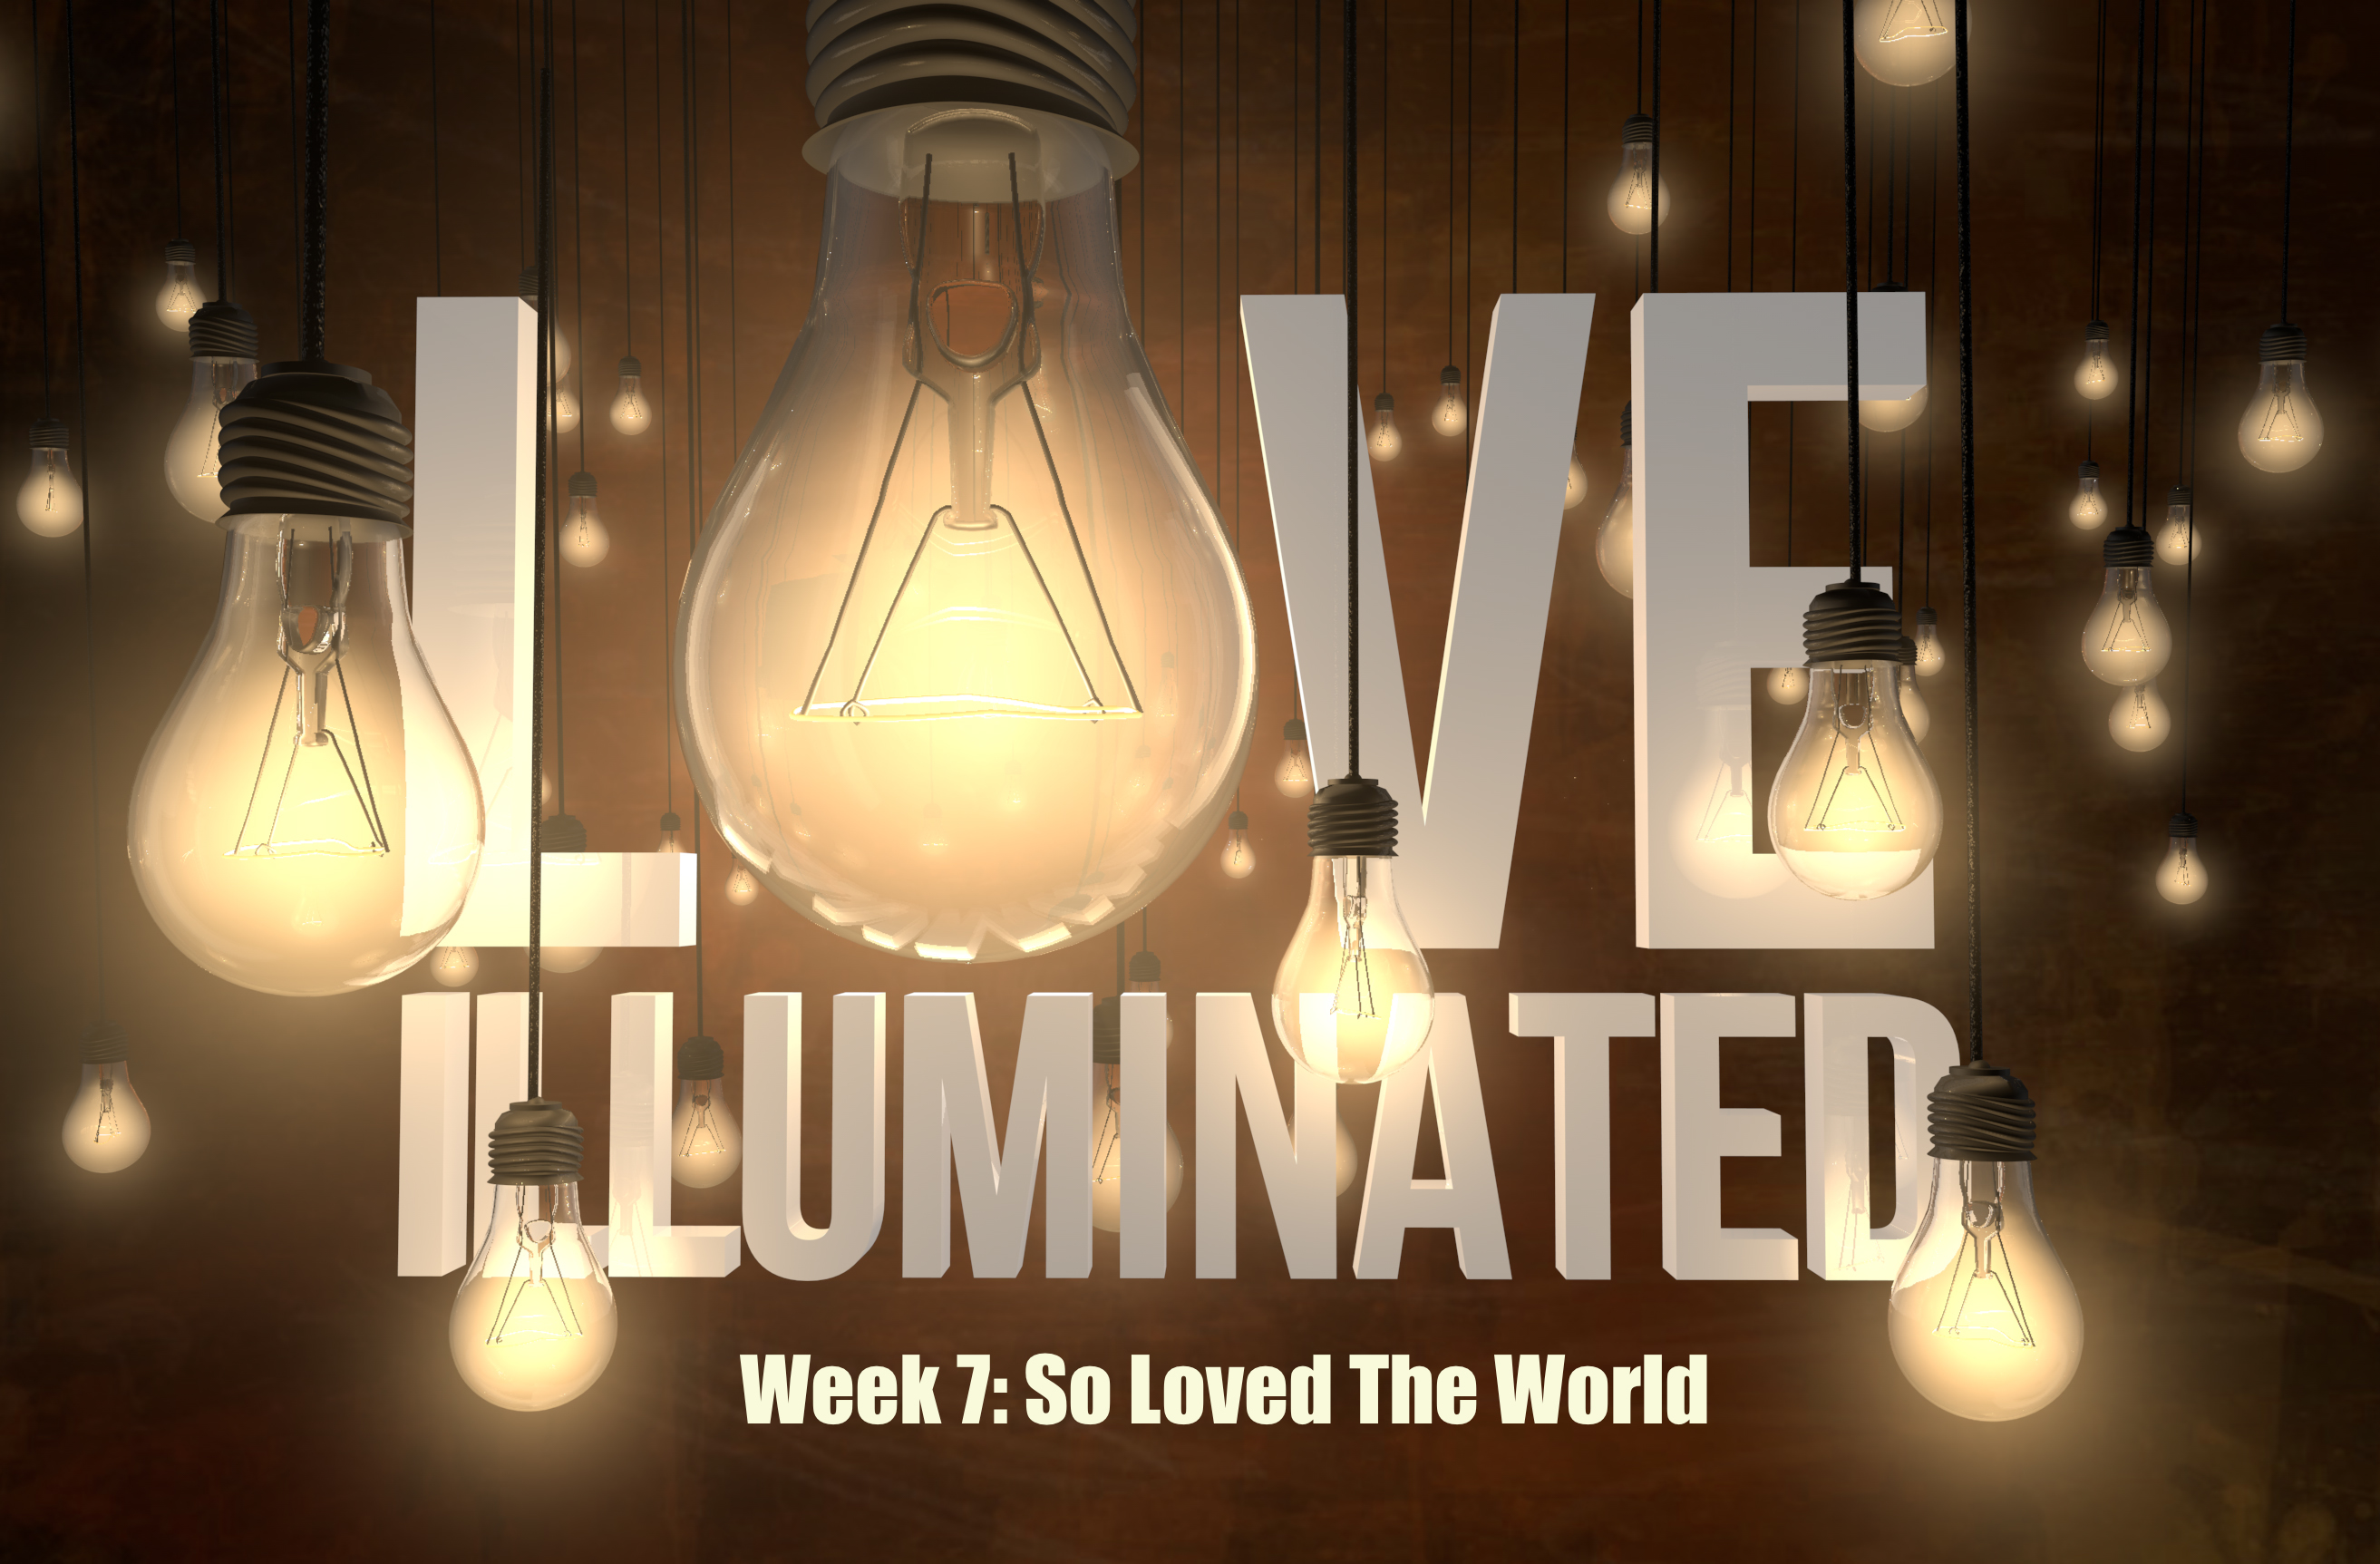 Love Illuminated, Part 7: So Loved The World